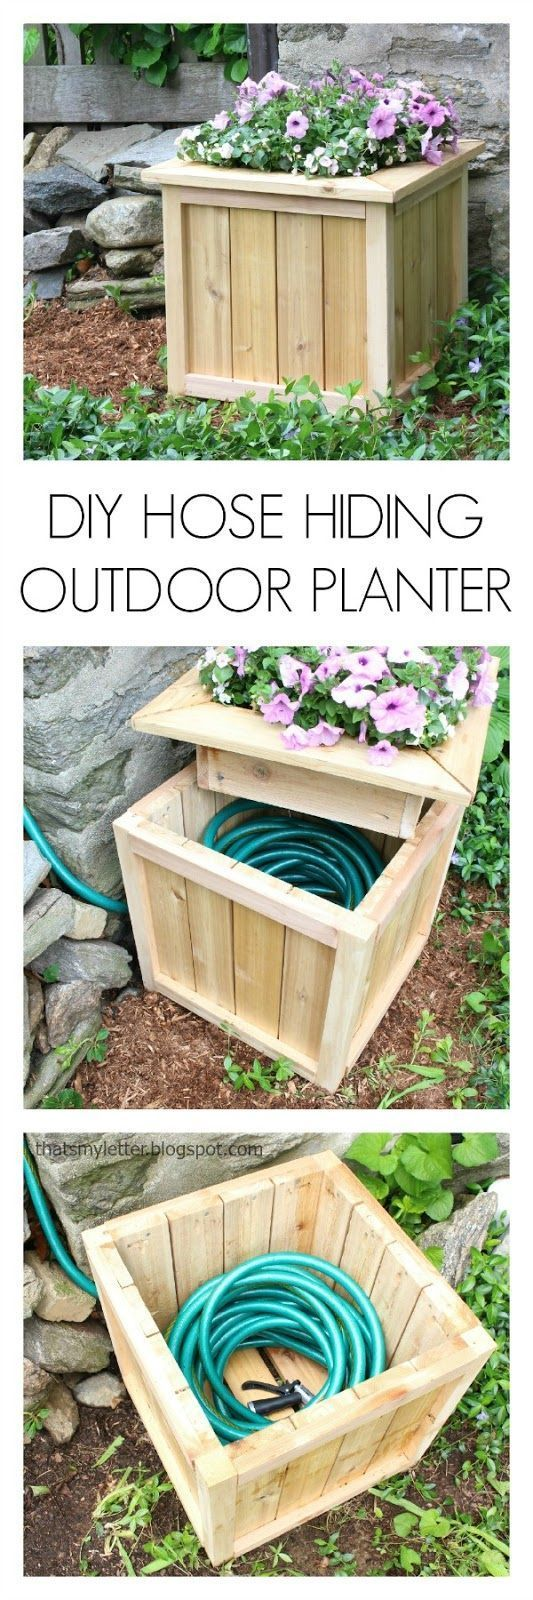 Make a Planter that Hides Your Hose. Get the full direction